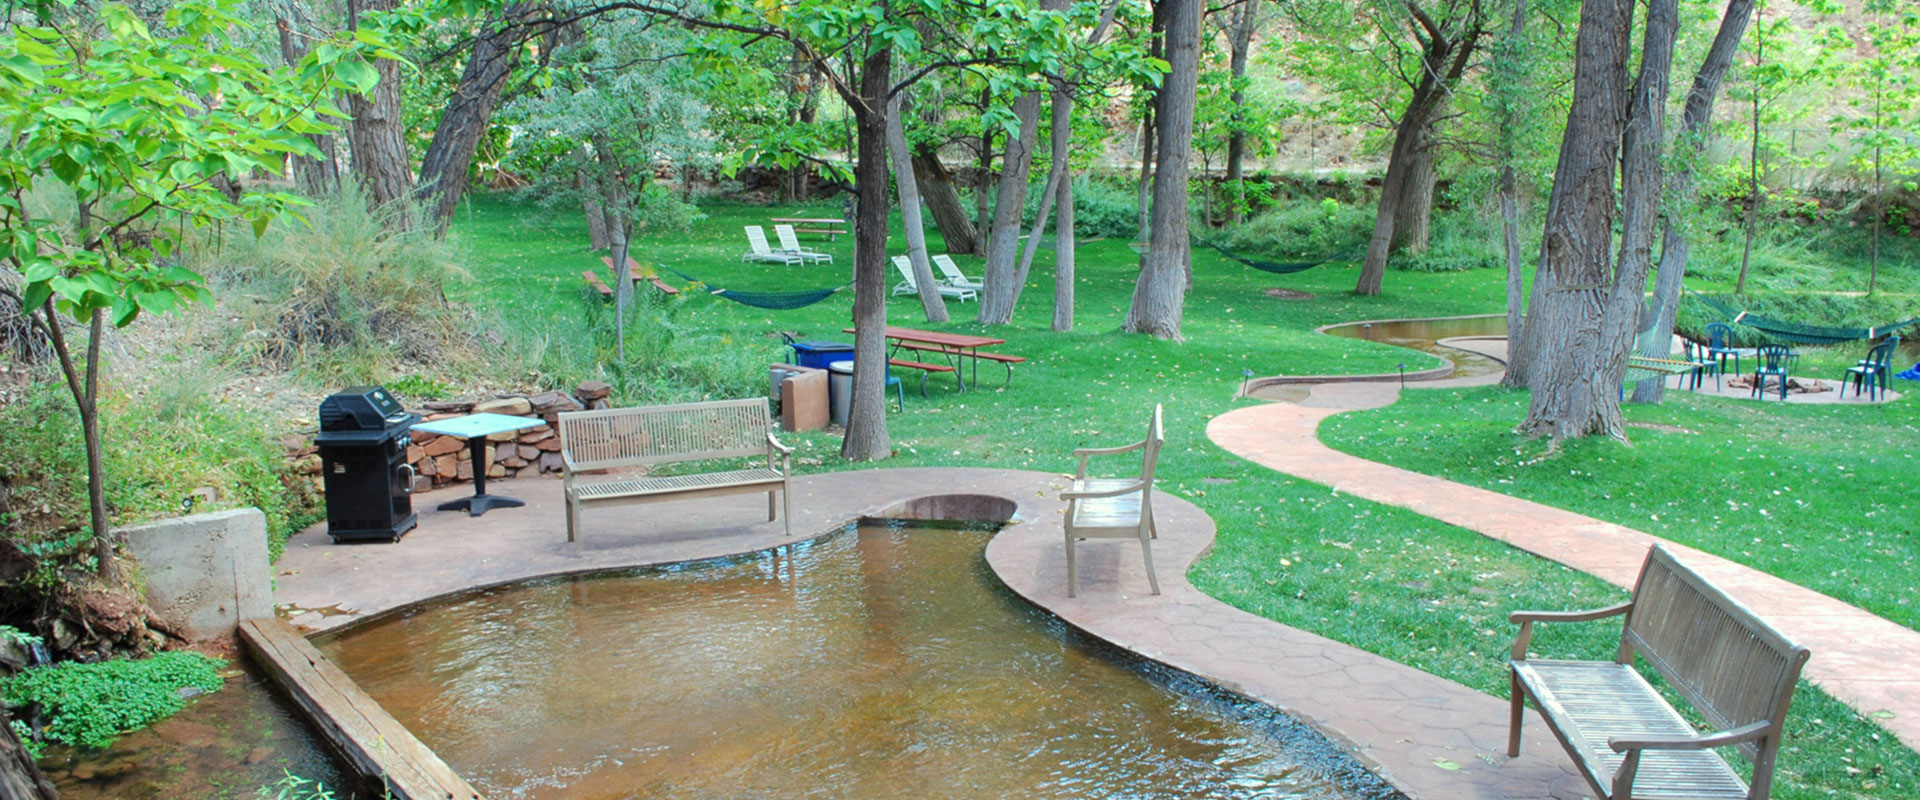 Clusters of purple wisteria hang over a steel rod fence enclosing a lounge area with a chaise lounge, patio seats, and filigree ironwork tables at Moab Springs Ranch.